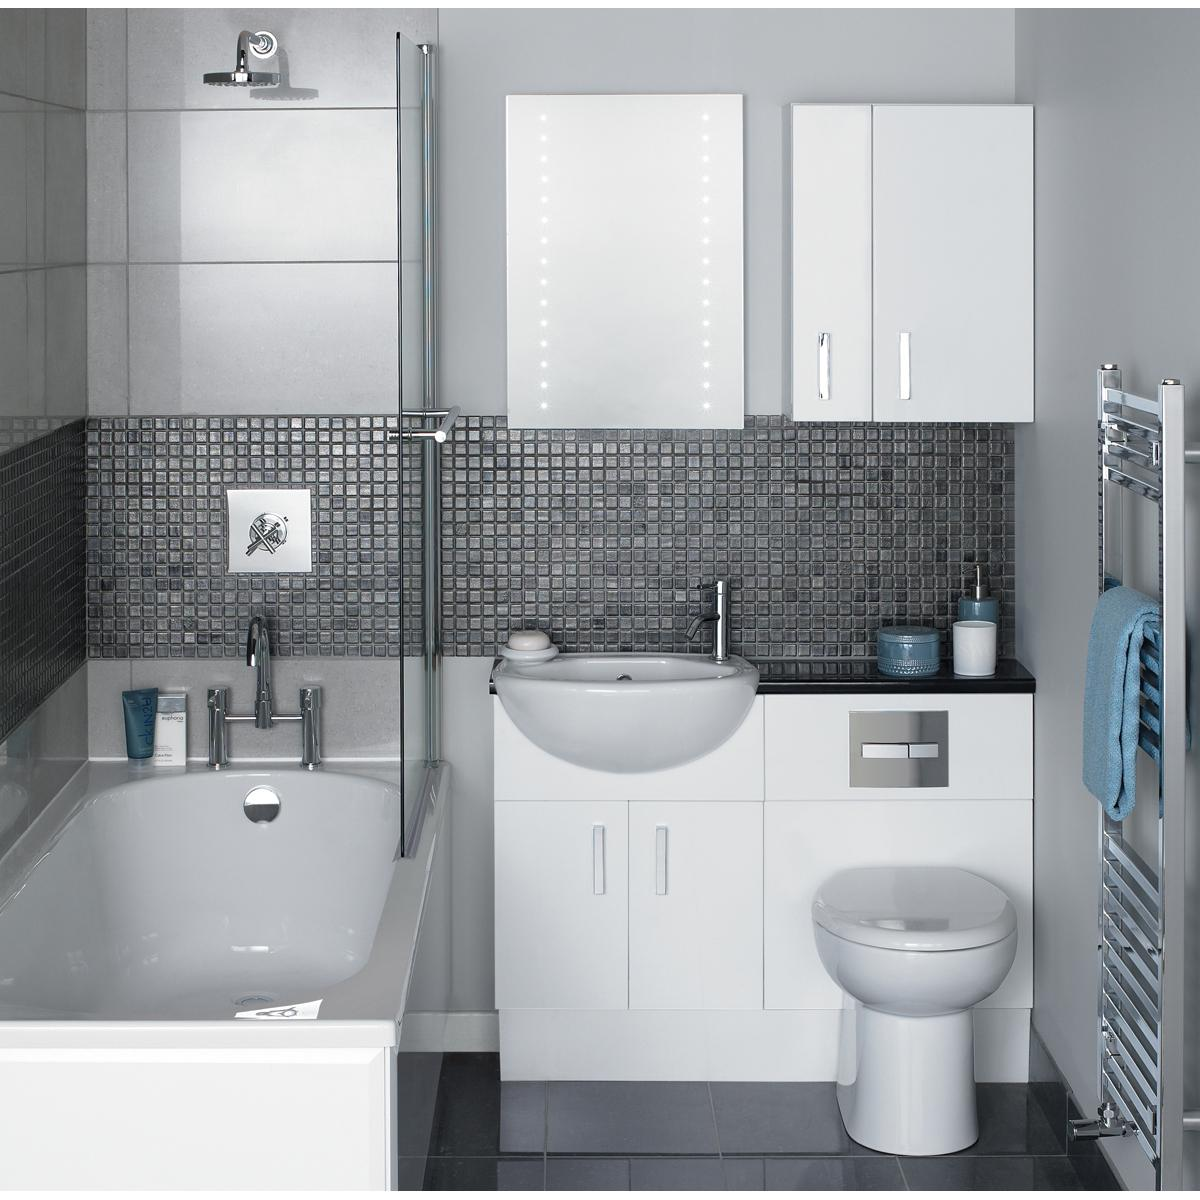 Corporate Bathroom Ideas: Home Business And Lighting Designs